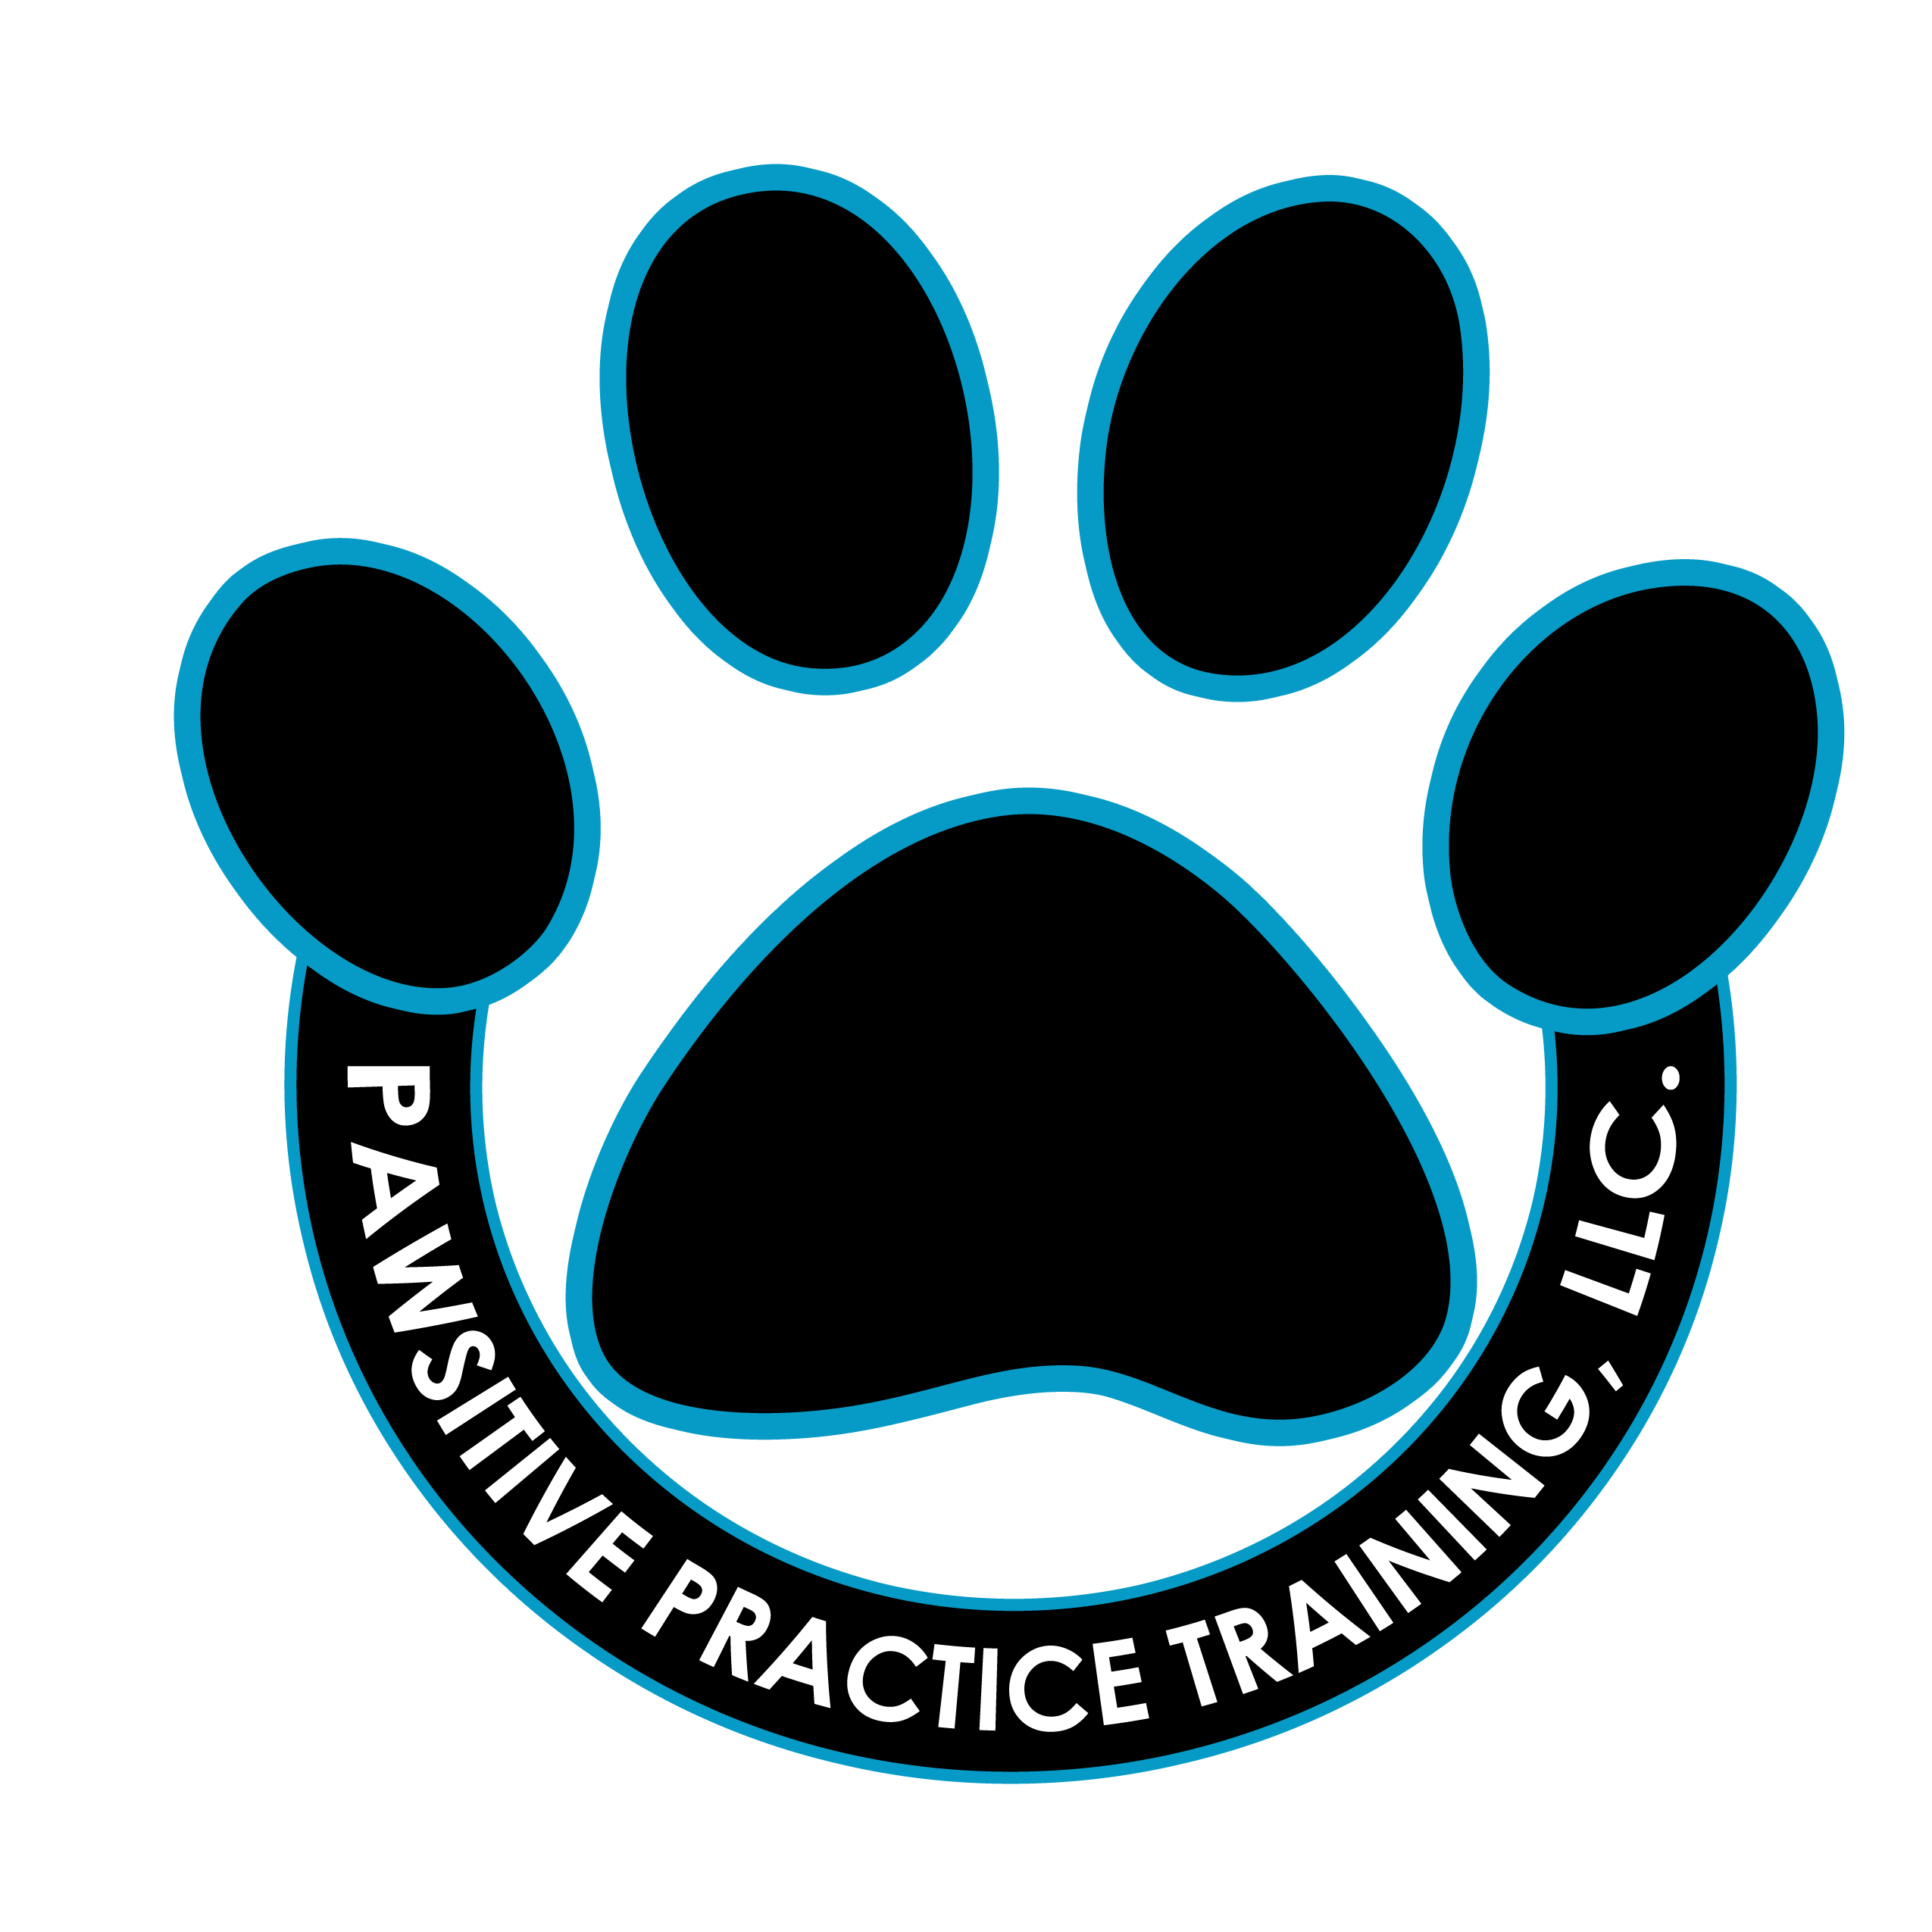 Pawsitive Practice Training & Behavior Consulting - Kennesaw, GA - Pet Obedience Training